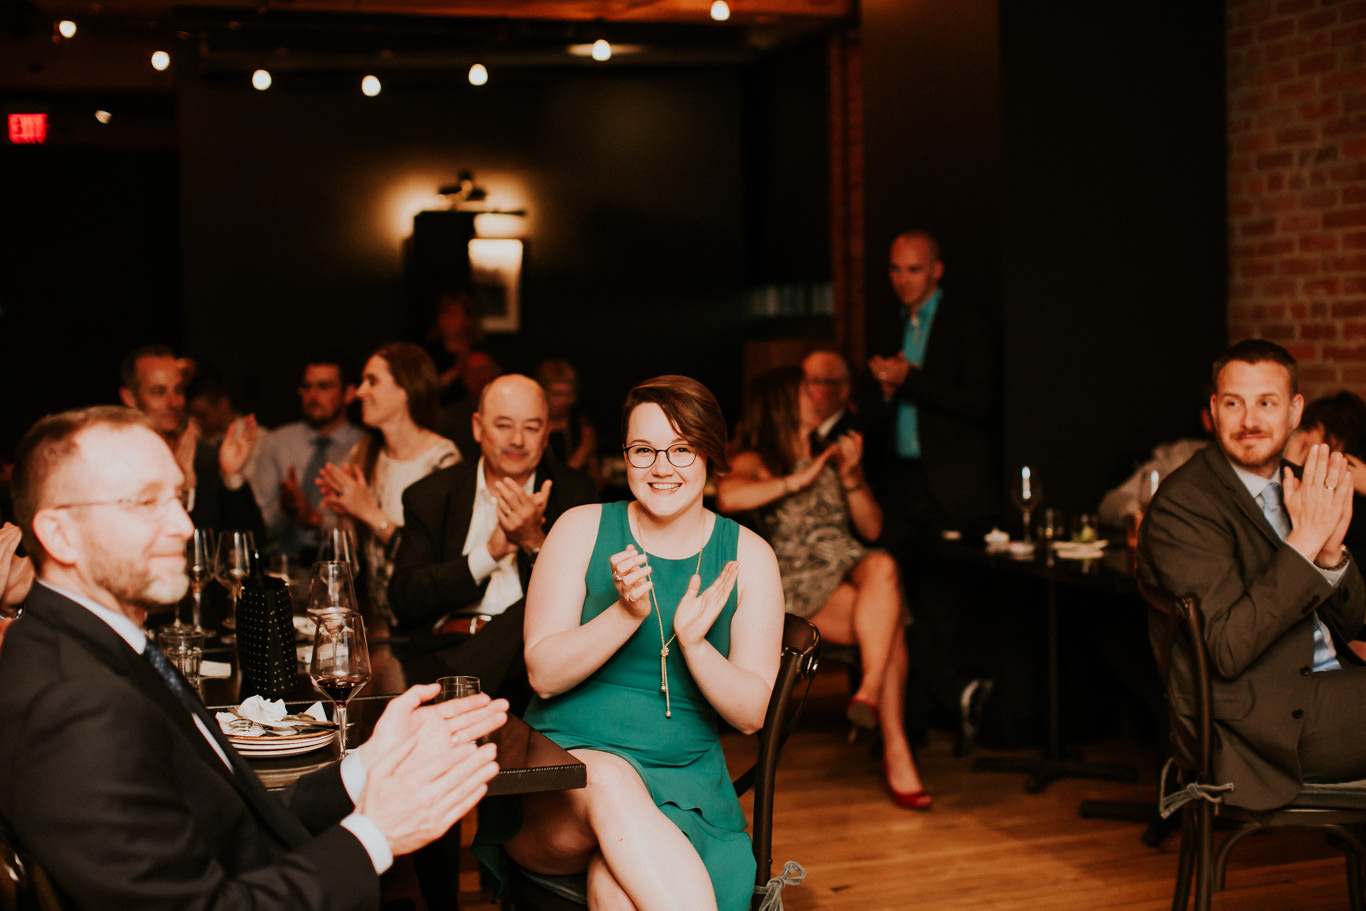 Lindsay-and-Heather-Charbar-Restaurant-Wedding-in-Calgary-182